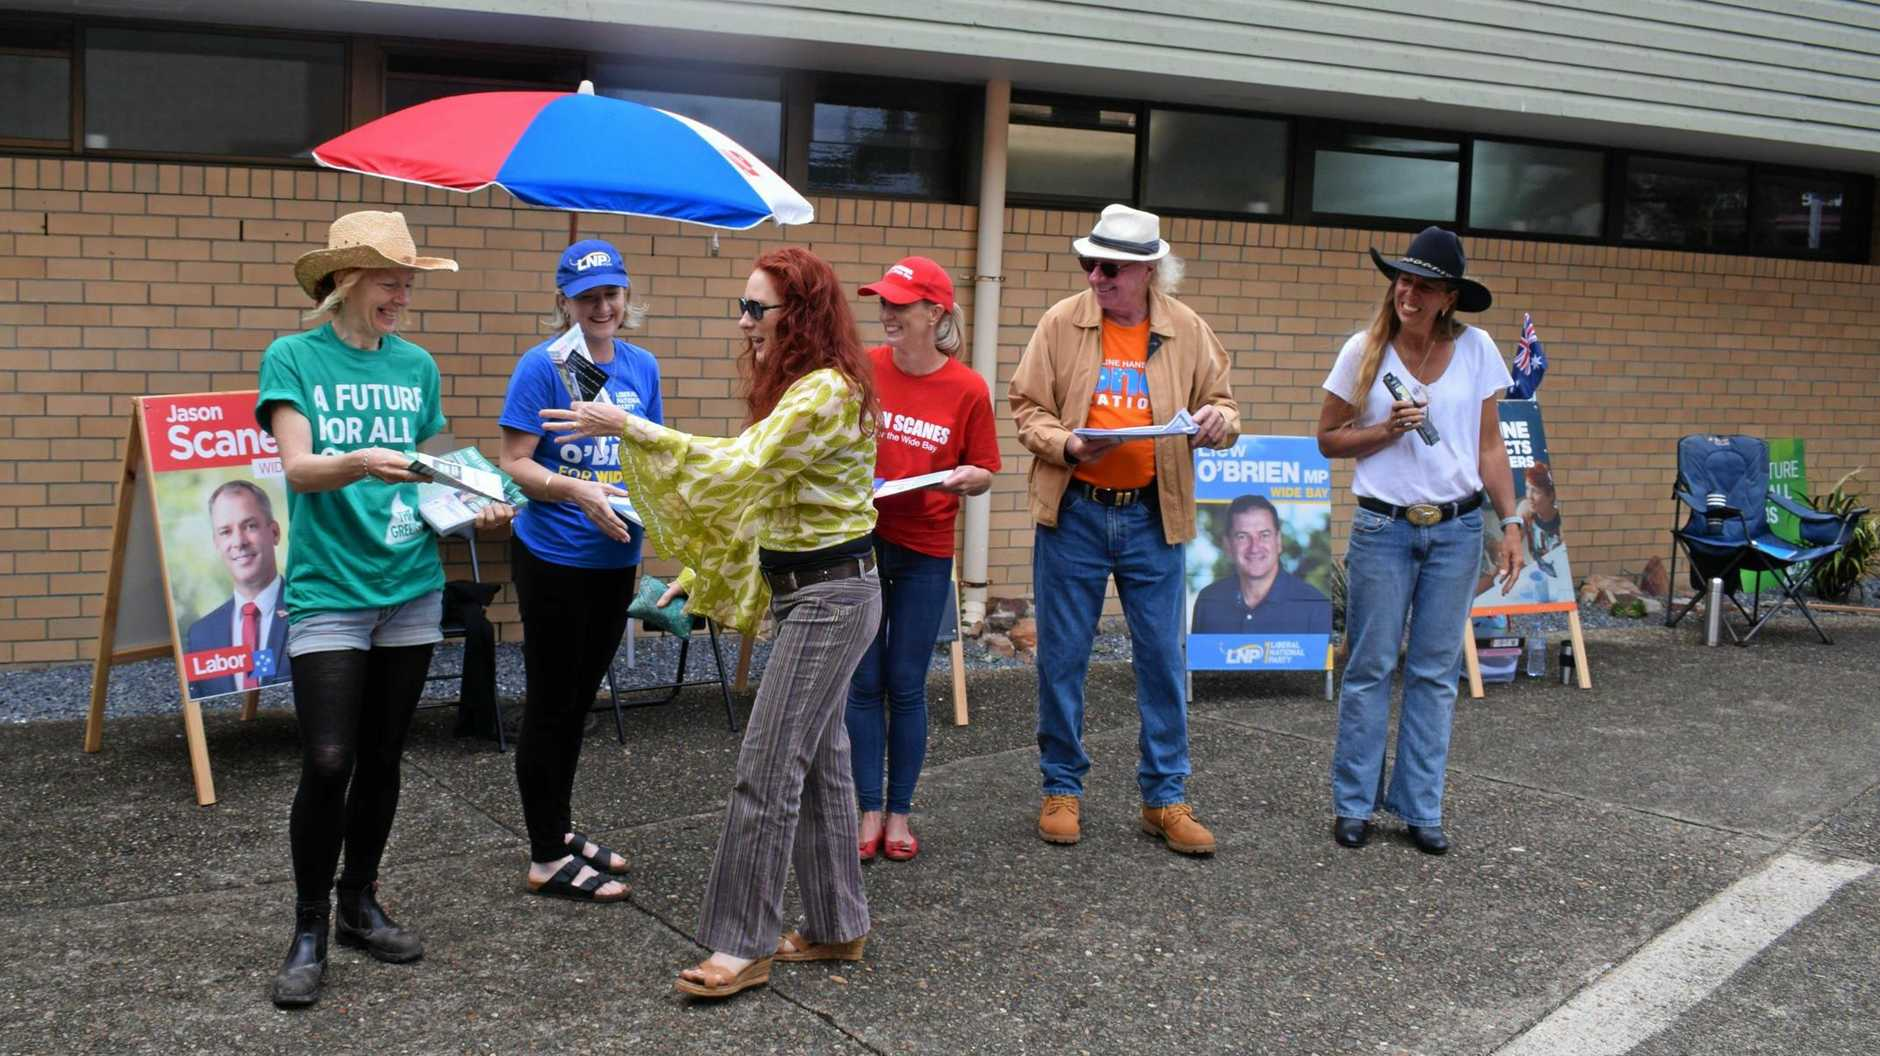 A voter runs the gauntlet of party promoters at Gympie's Senior Citizens Centre.